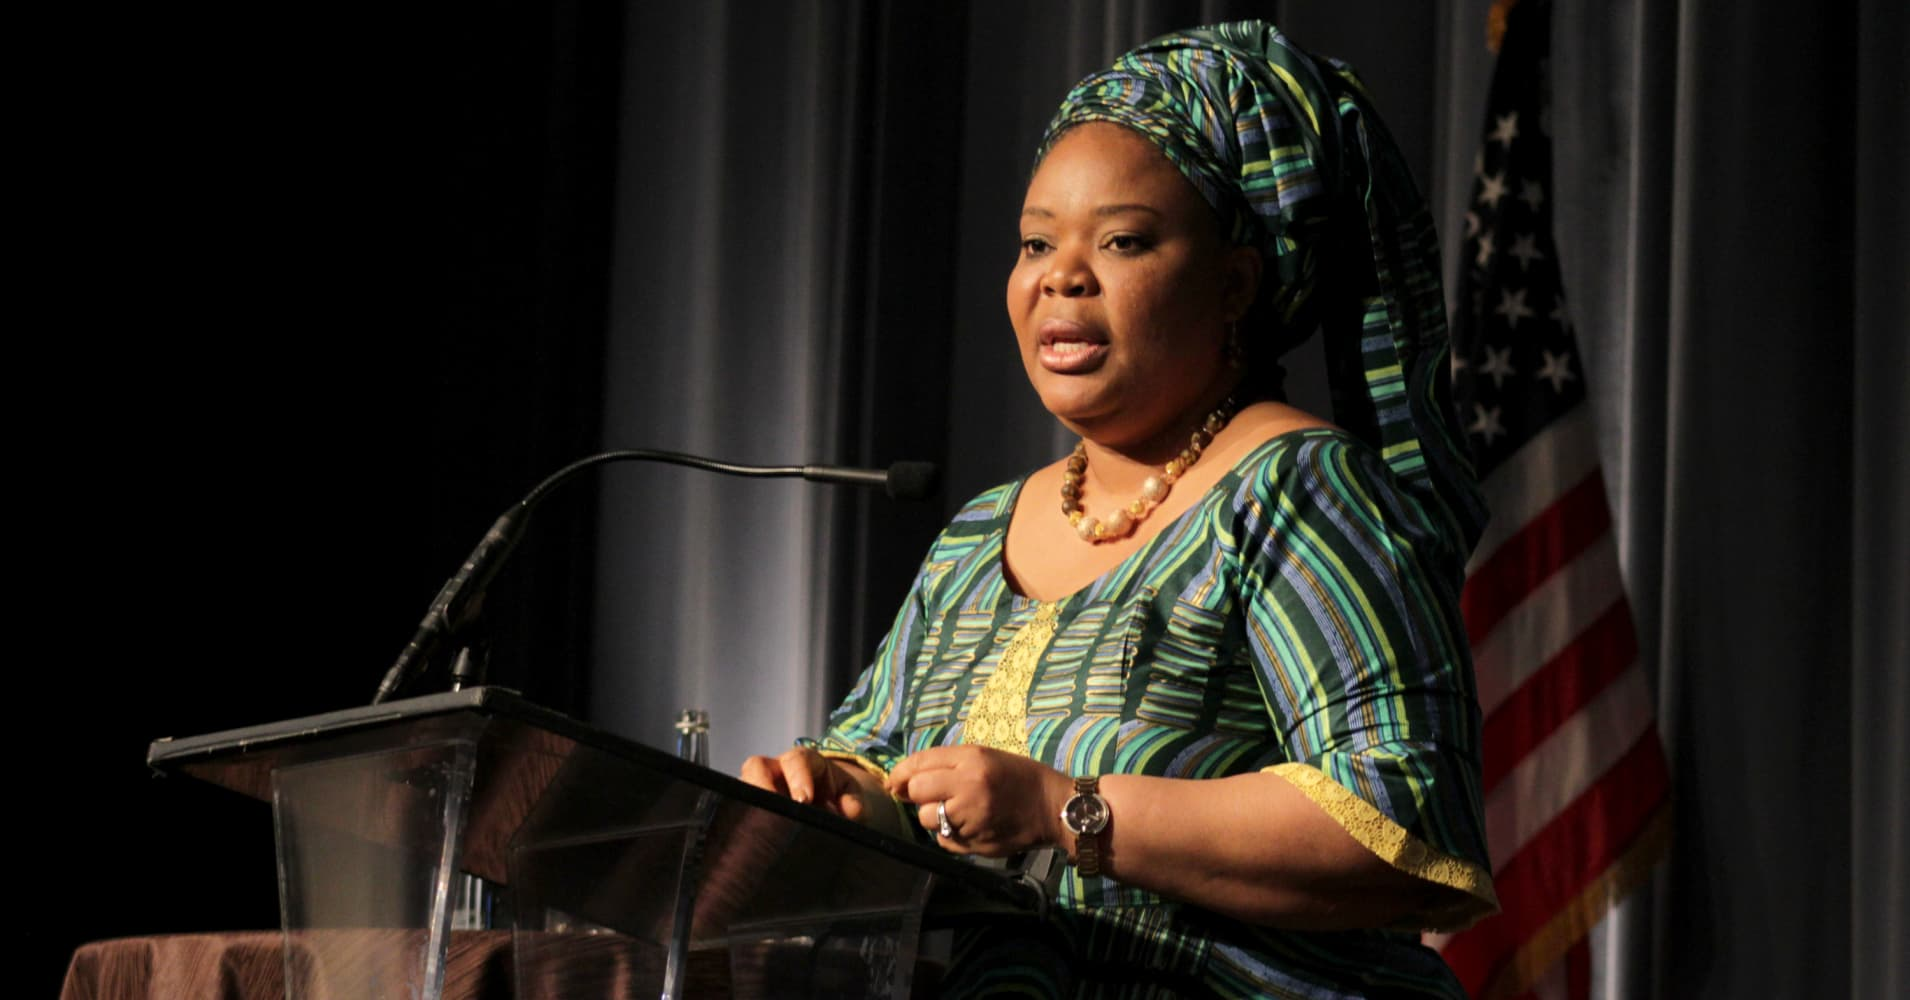 Nobel Peace Laureate Leymah Gbowee speaks about 'The Role of Women at the Front Lines of Peace Building' during a Visionary Women Salon at the Beverly Wilshire Four Seasons Hotel on May 5, 2015